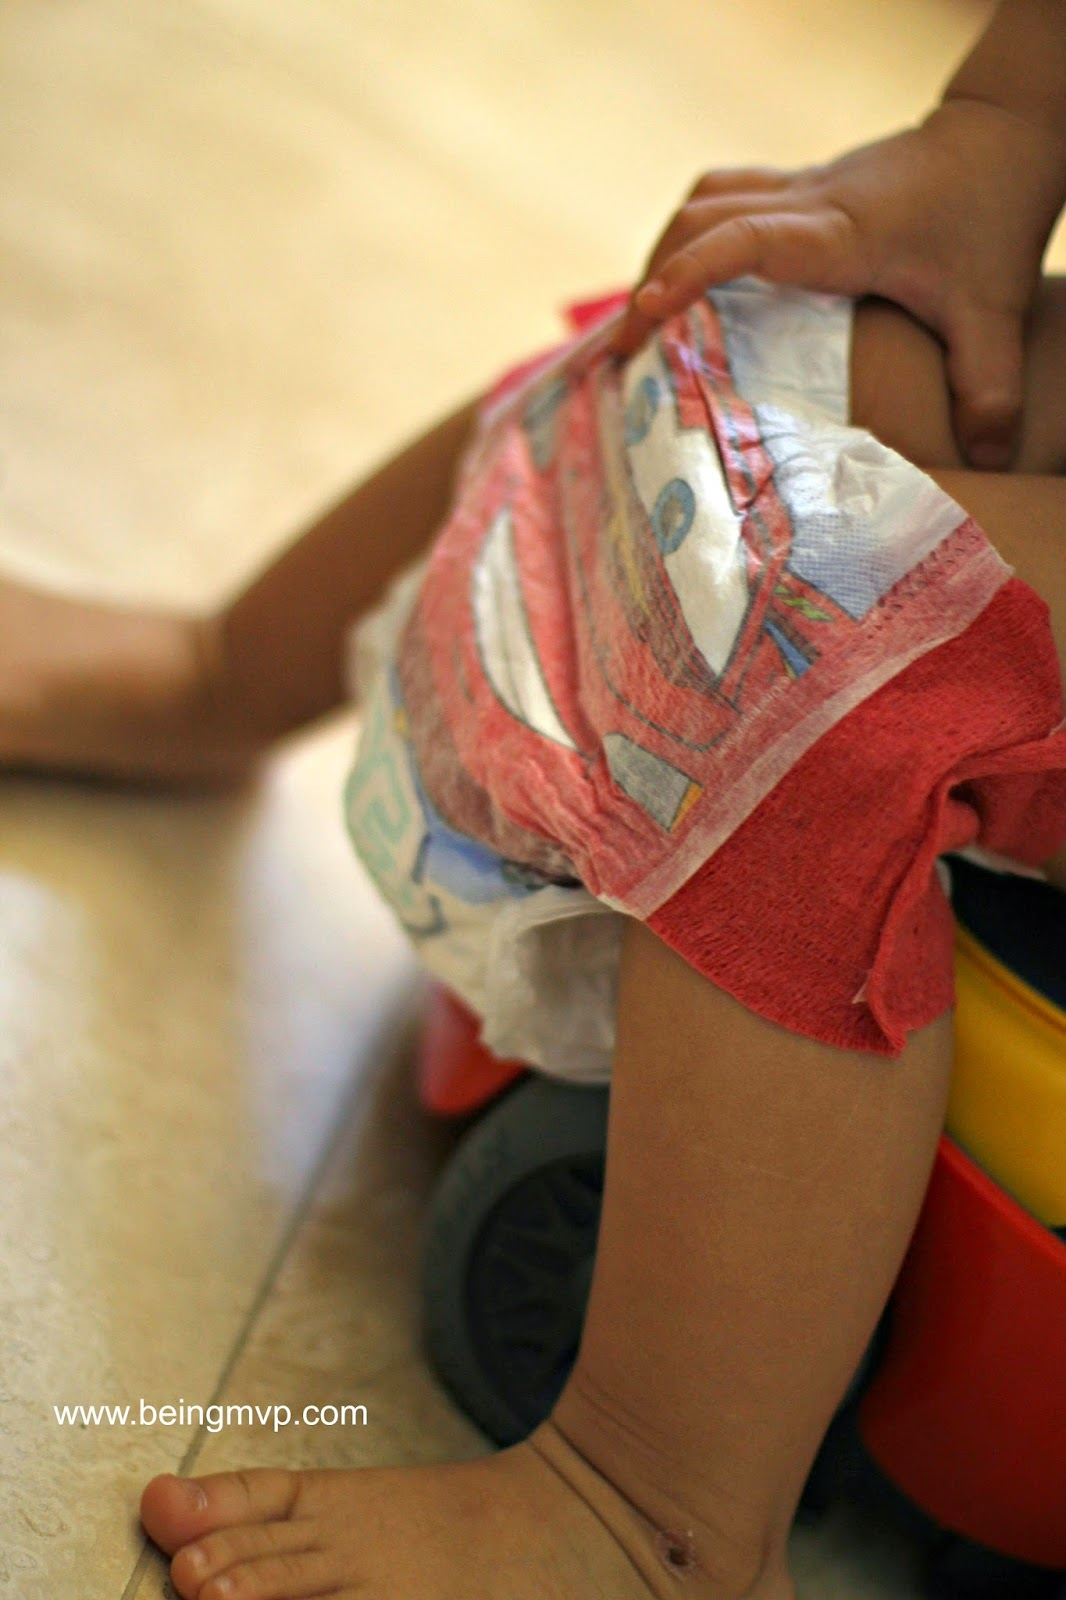 Huggies pull ups diapers car tuning - 4 Inform Houseguests If You Are Hosting A Holiday Party Or Gathering Let Your Guests Know Beforehand That Your Toddler Is In The Process Of Potty